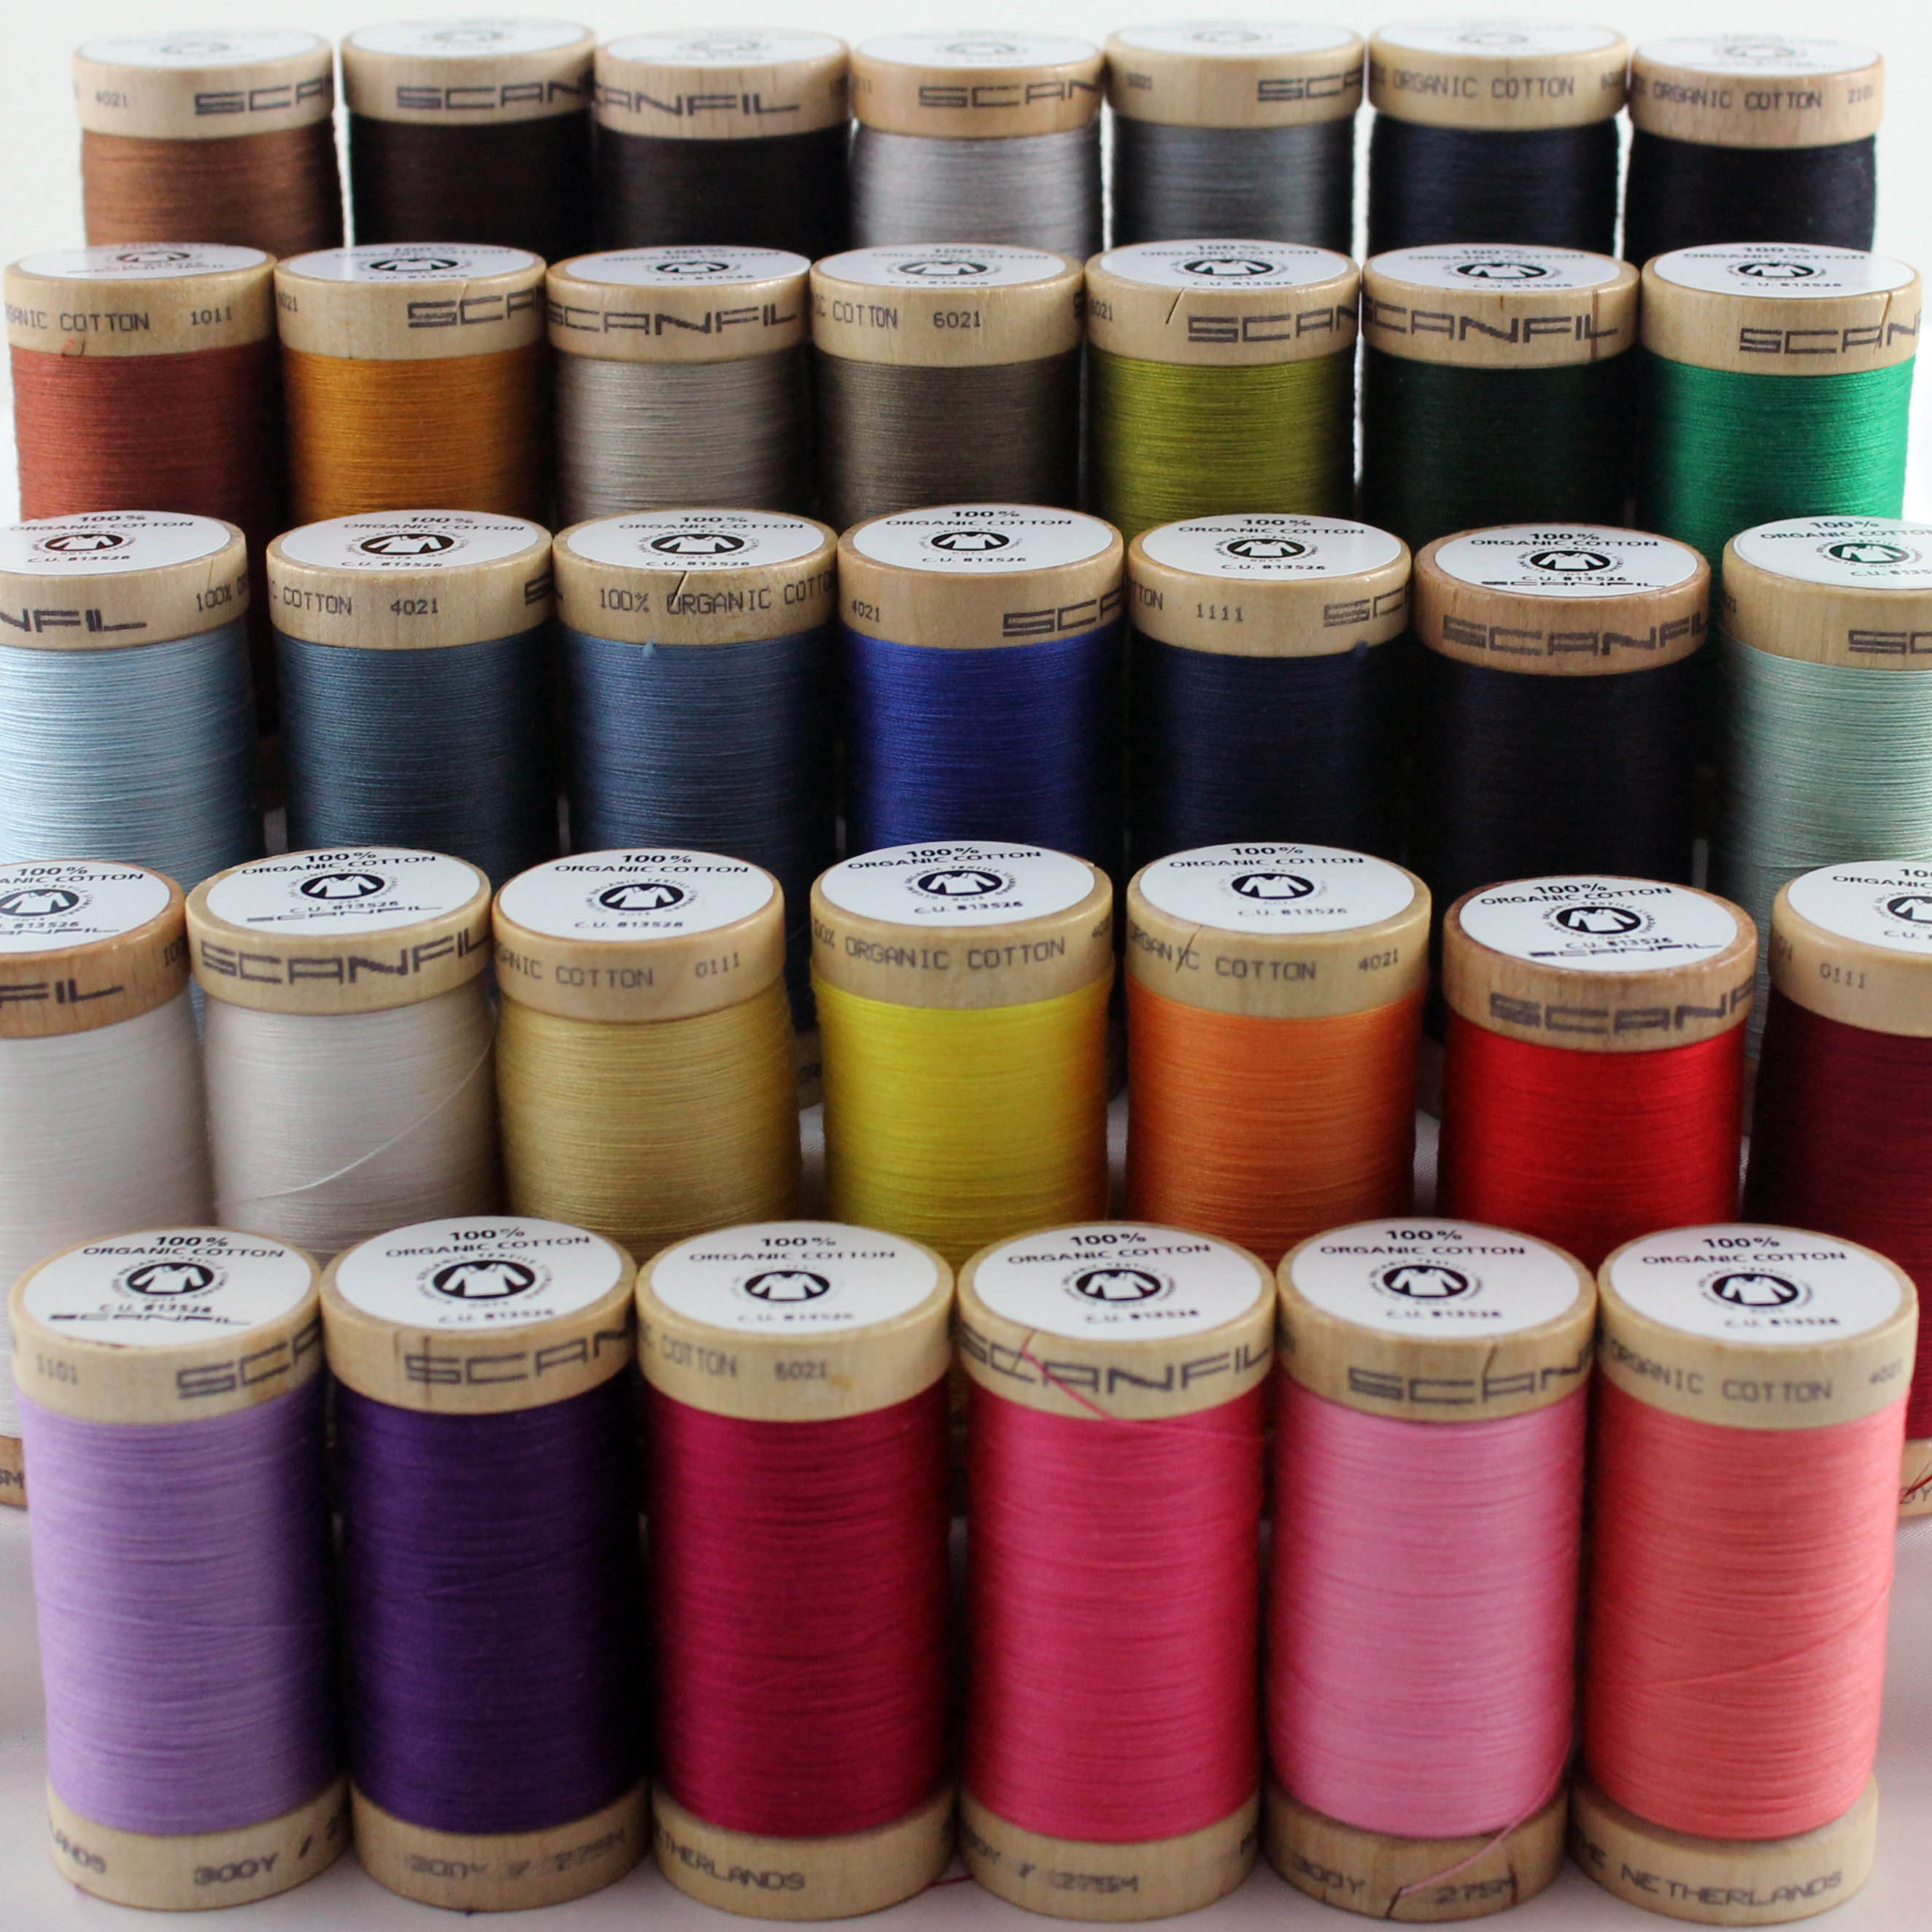 Harvest Gold Organic Cotton Thread